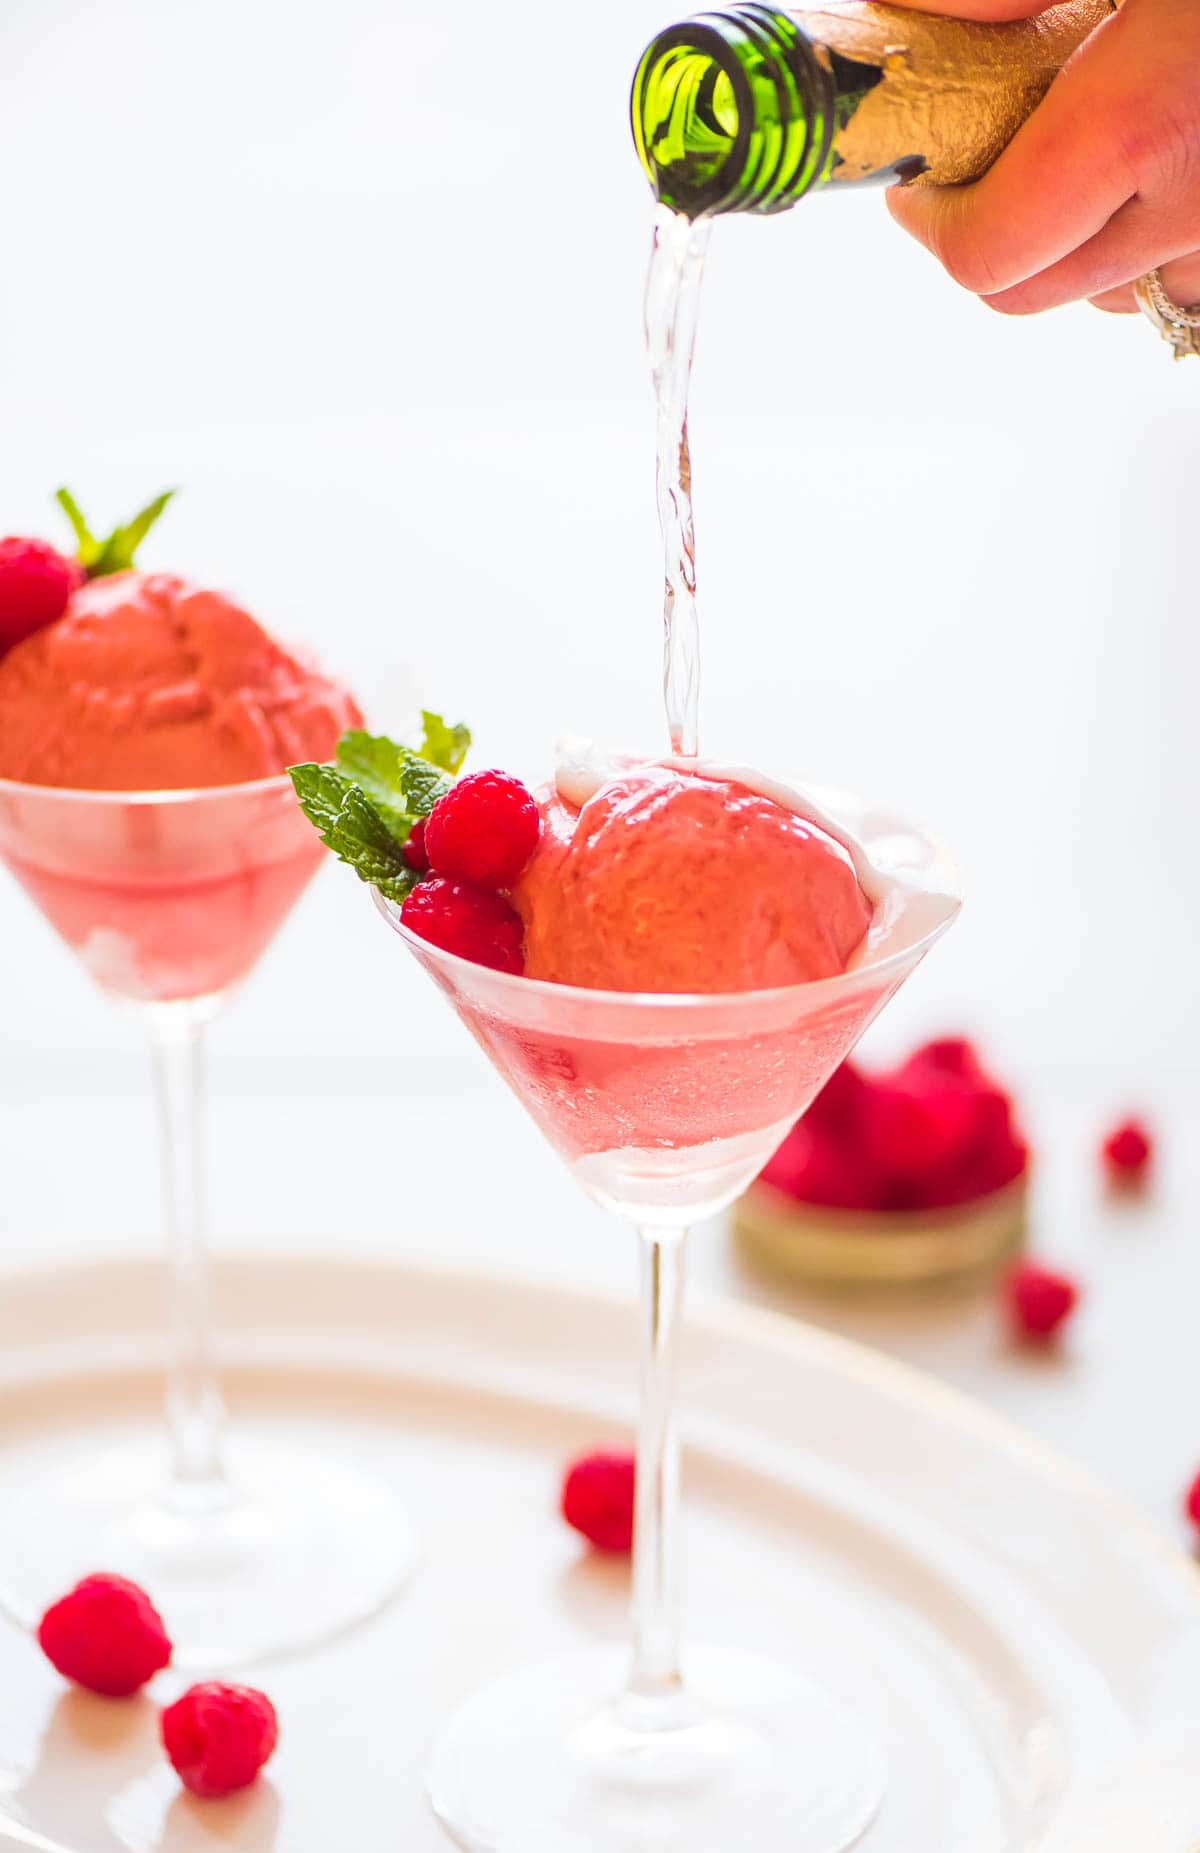 Raspberry Champagne Floats. TWO INGREDIENTS! A fun pink dessert-meets-cocktails for your next New Year's Eve, bachelorette party, bridal shower, or Valentine's Day. Recipe at wellplated.com | @wellplated